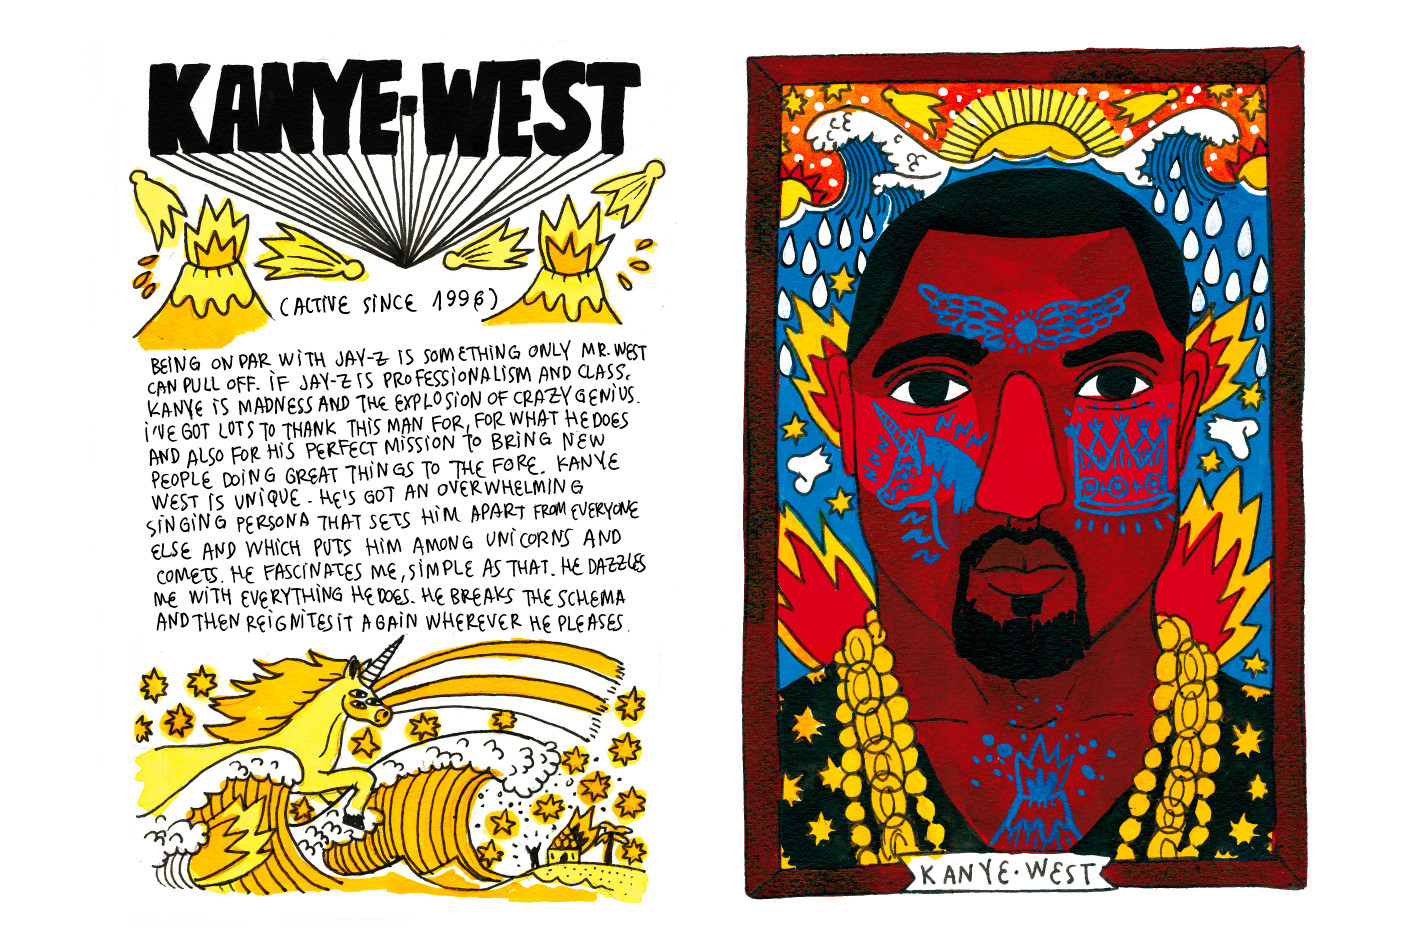 Ricardo Cavolo MURAL Festival 2017 Interview Kaytranada Mural Paintings Illustrations Artwork Kanye West Fashion